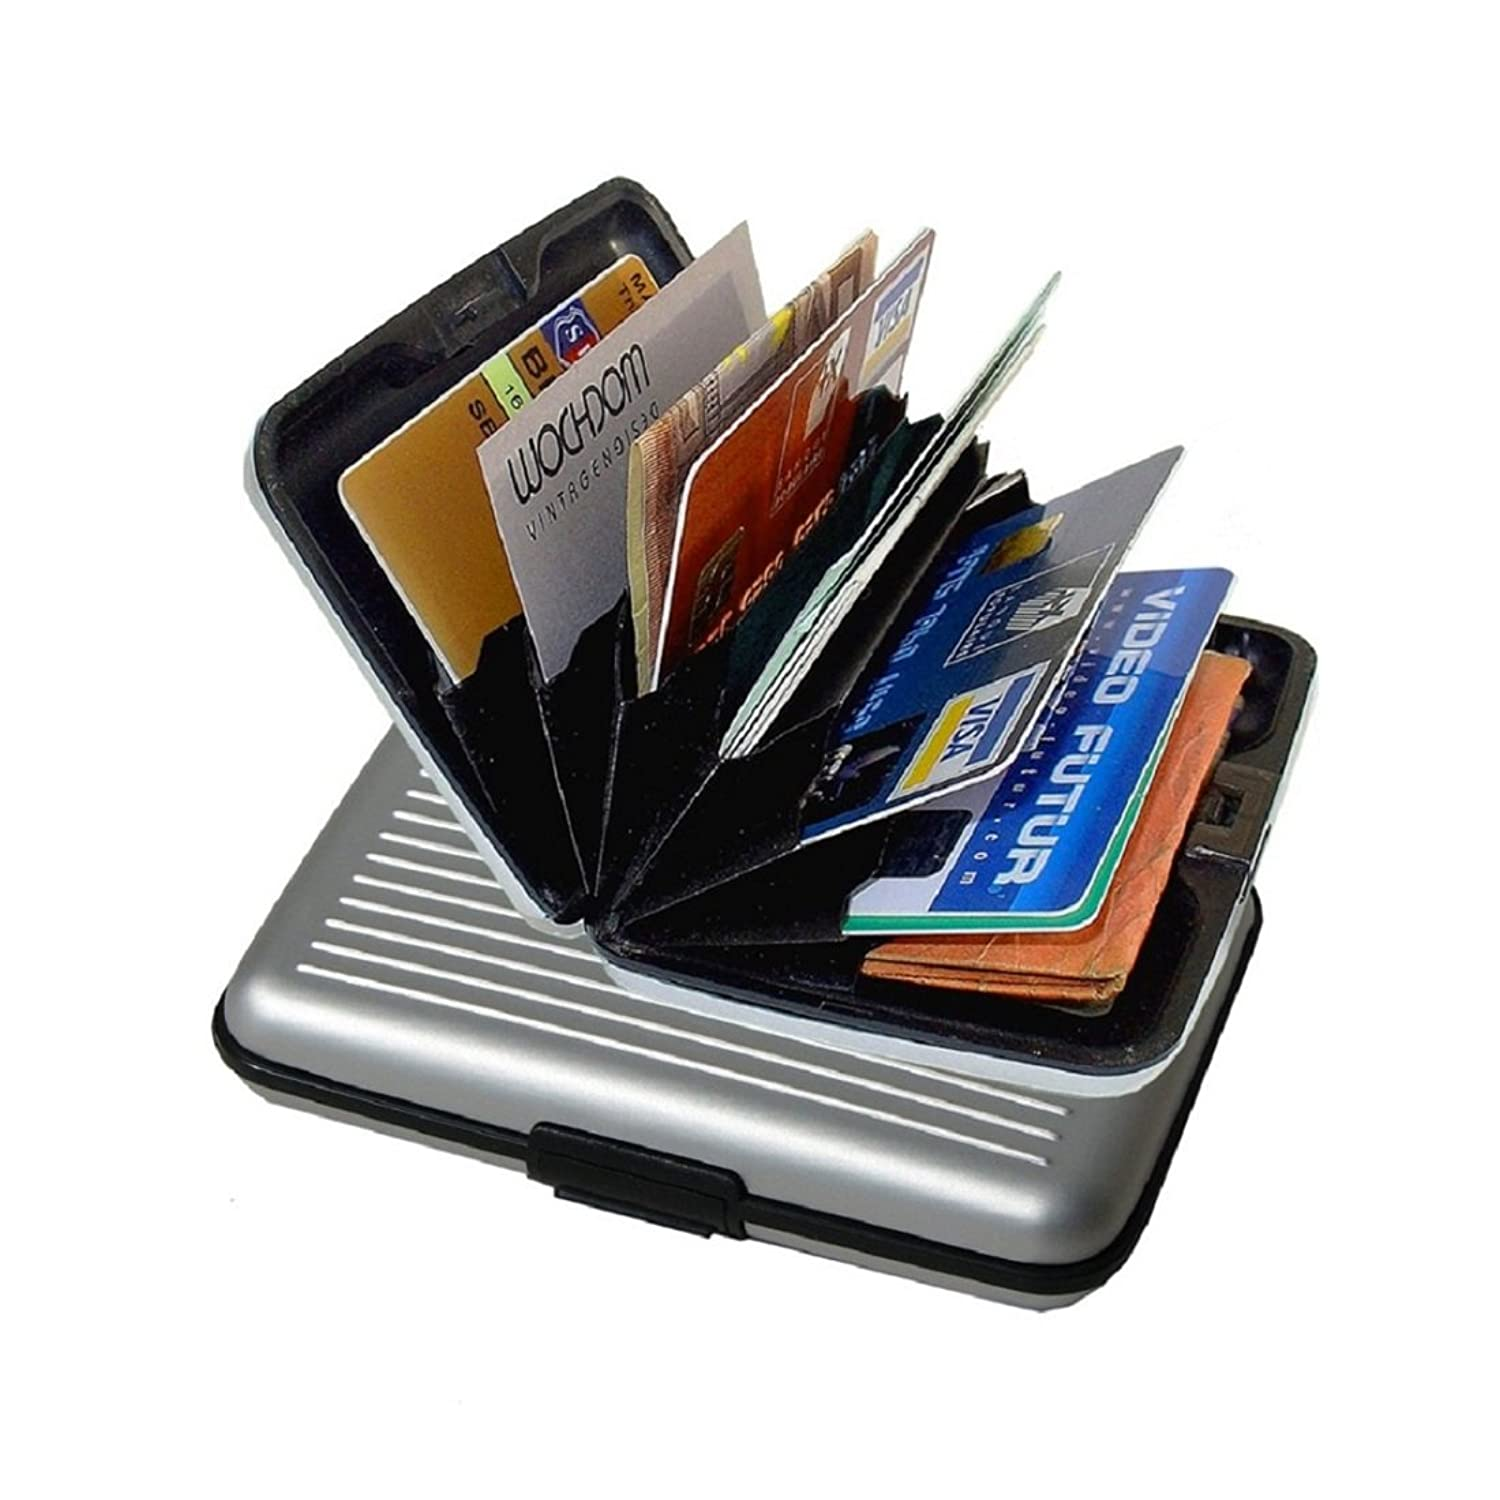 iLett. Aluminum Wallet, SMALL, Silver, Resistant, Card Protect, RFID Block, Card Holder, 6 pockets. Ultra Slim, Portable, For travel